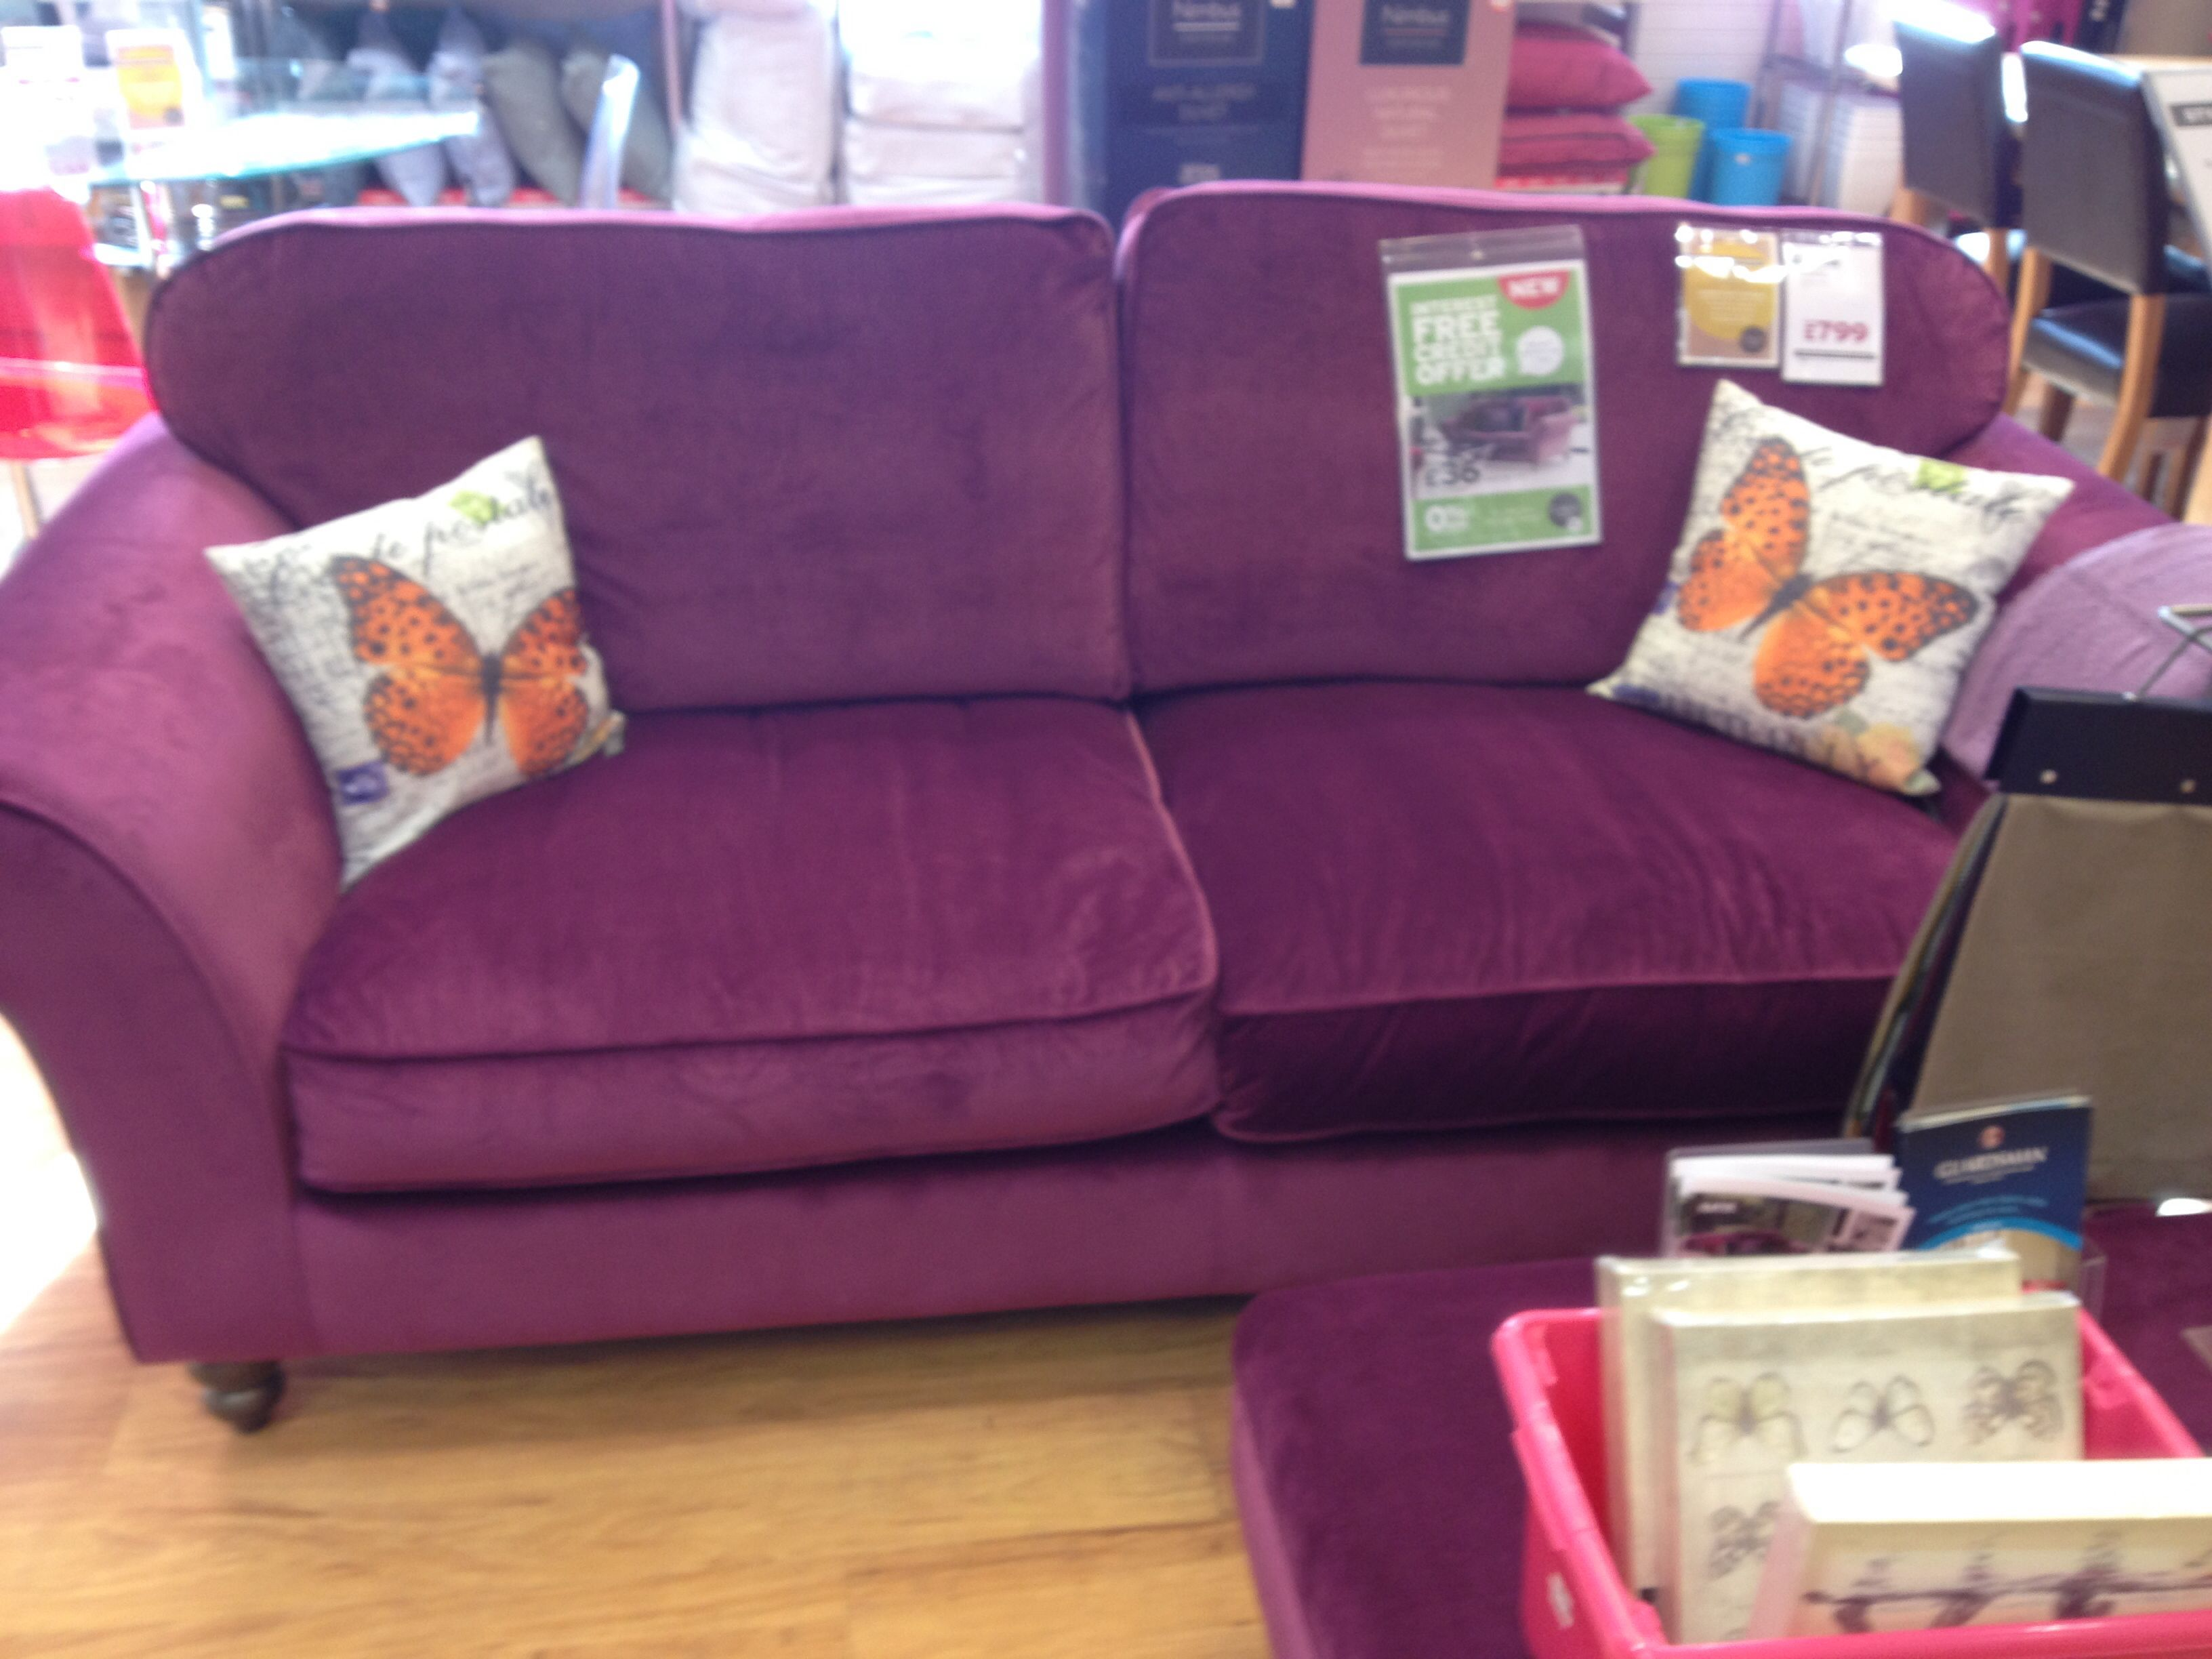 Loving the vibrant purple and luscious velvet Katie found in